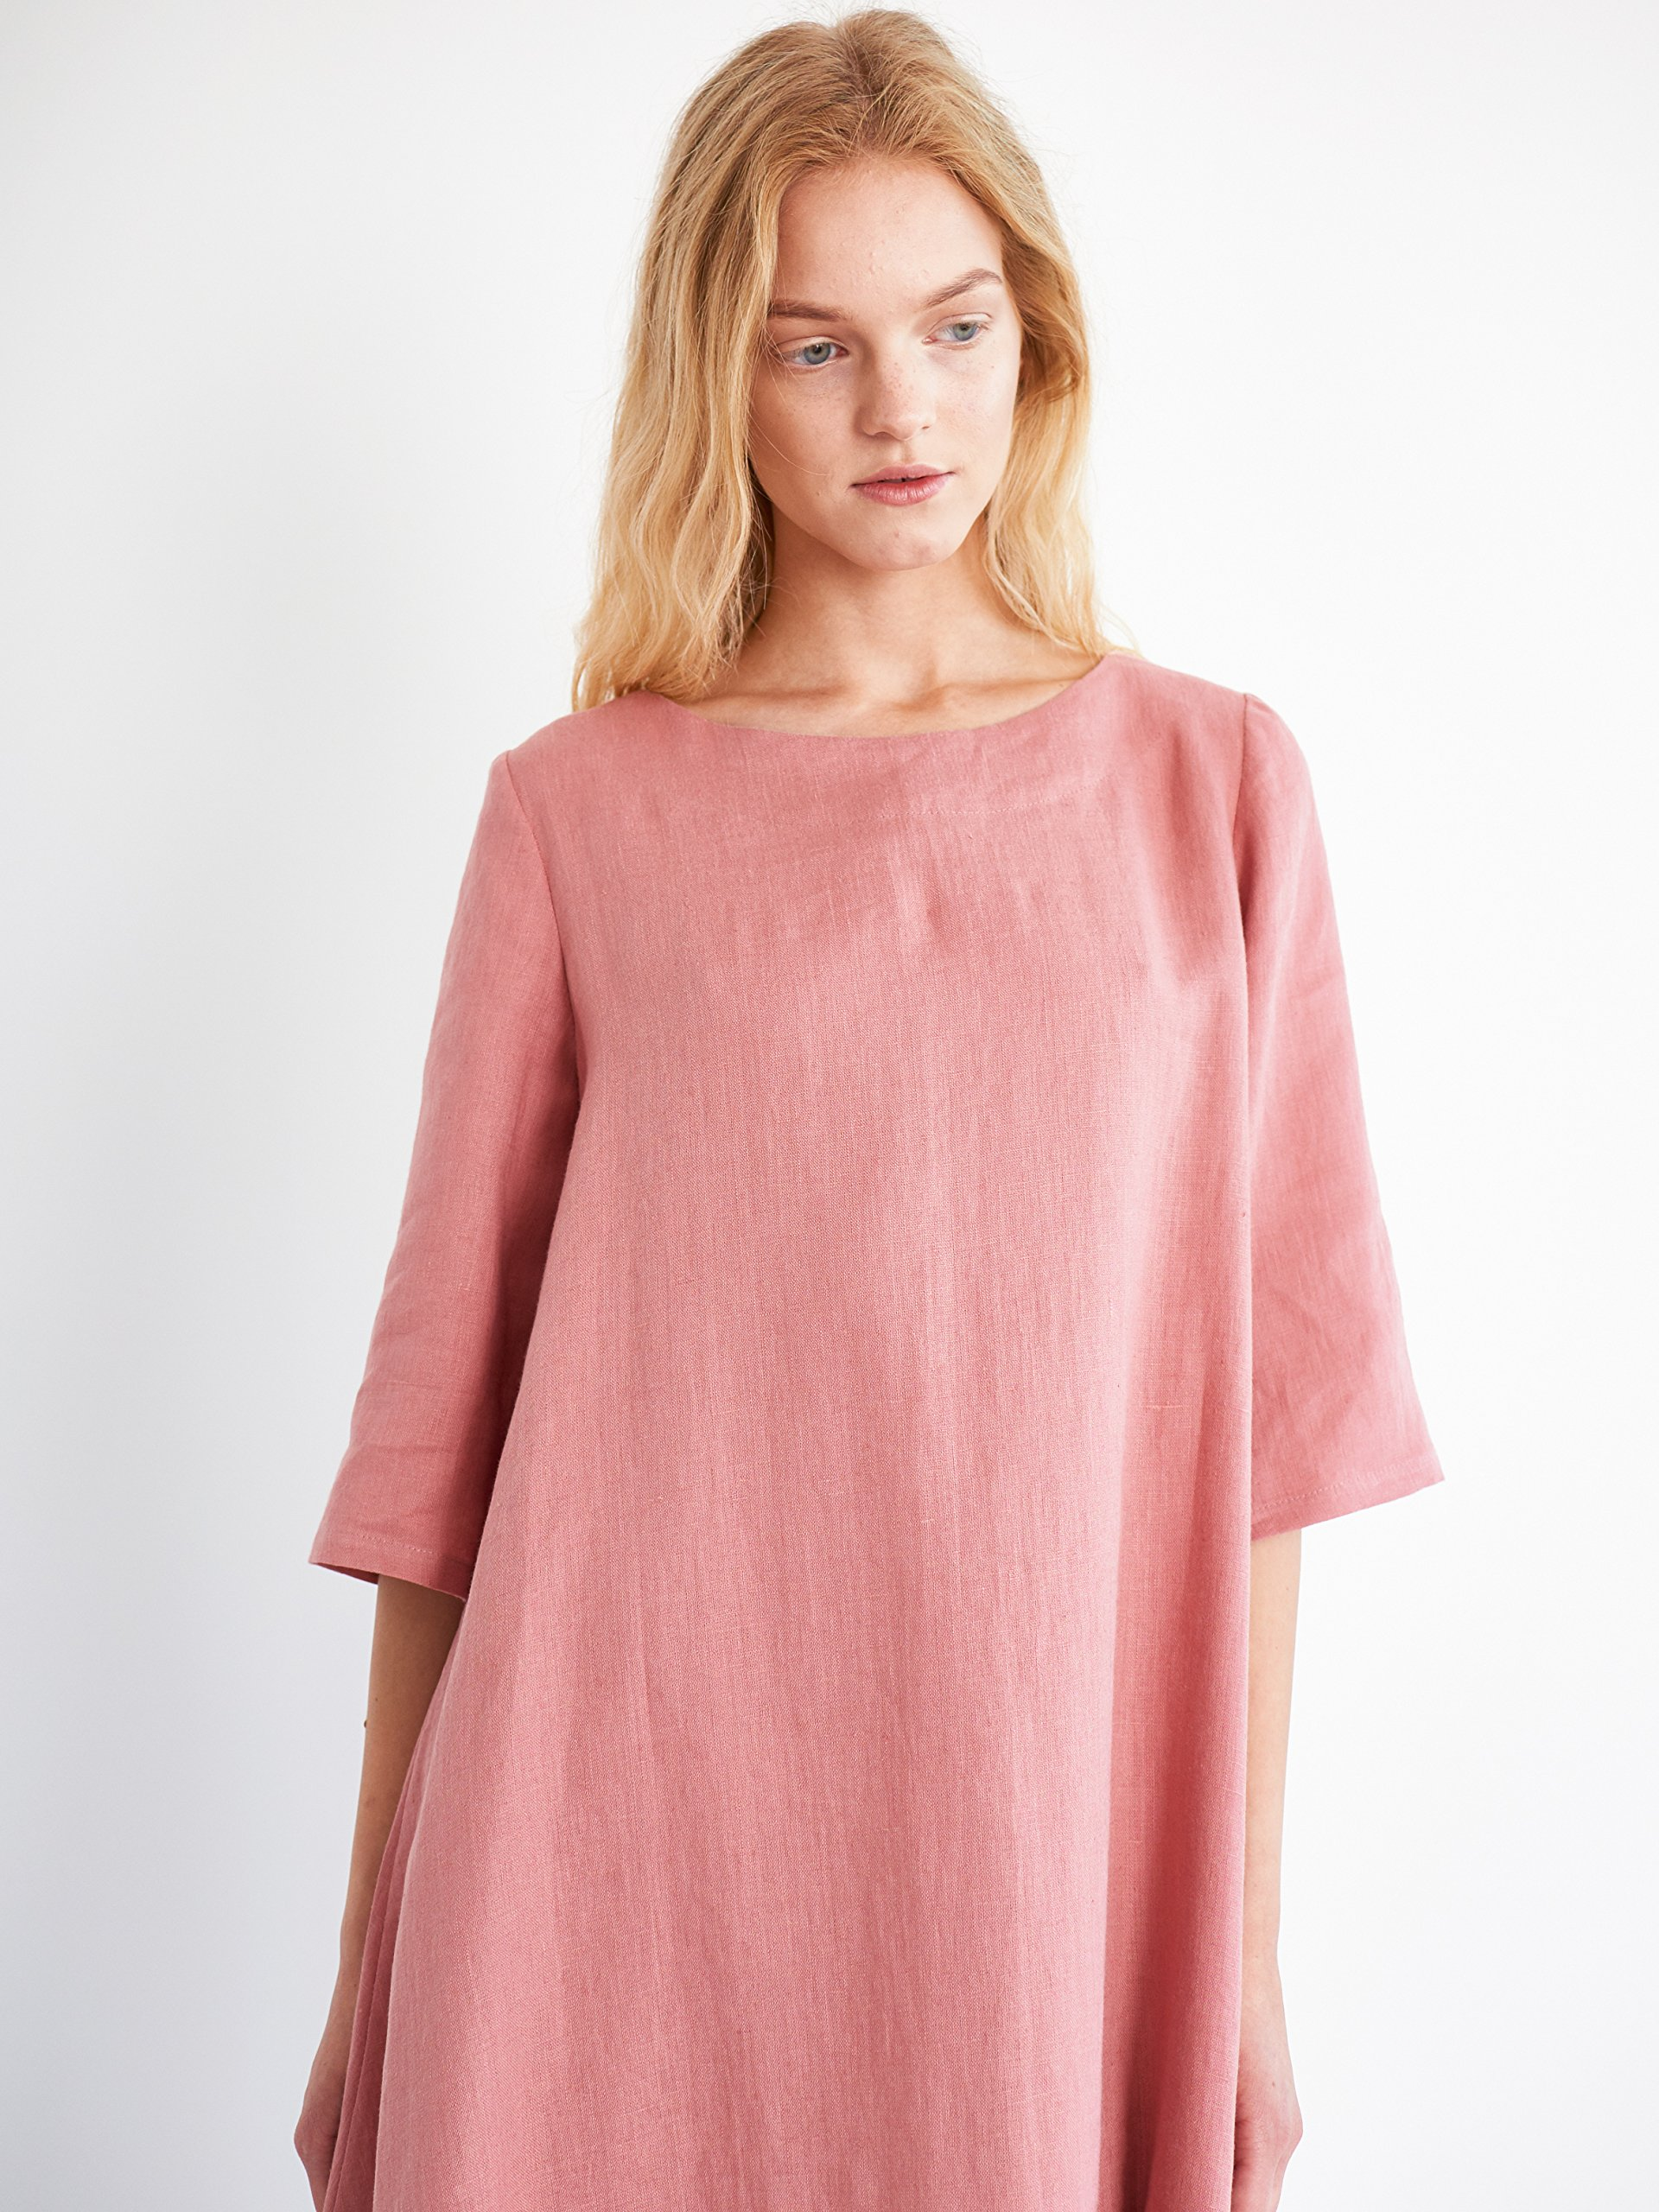 CHARLOTTE Trapeze Linen Dress in Salmon Pink Short Sleeve Boat Neck Summer